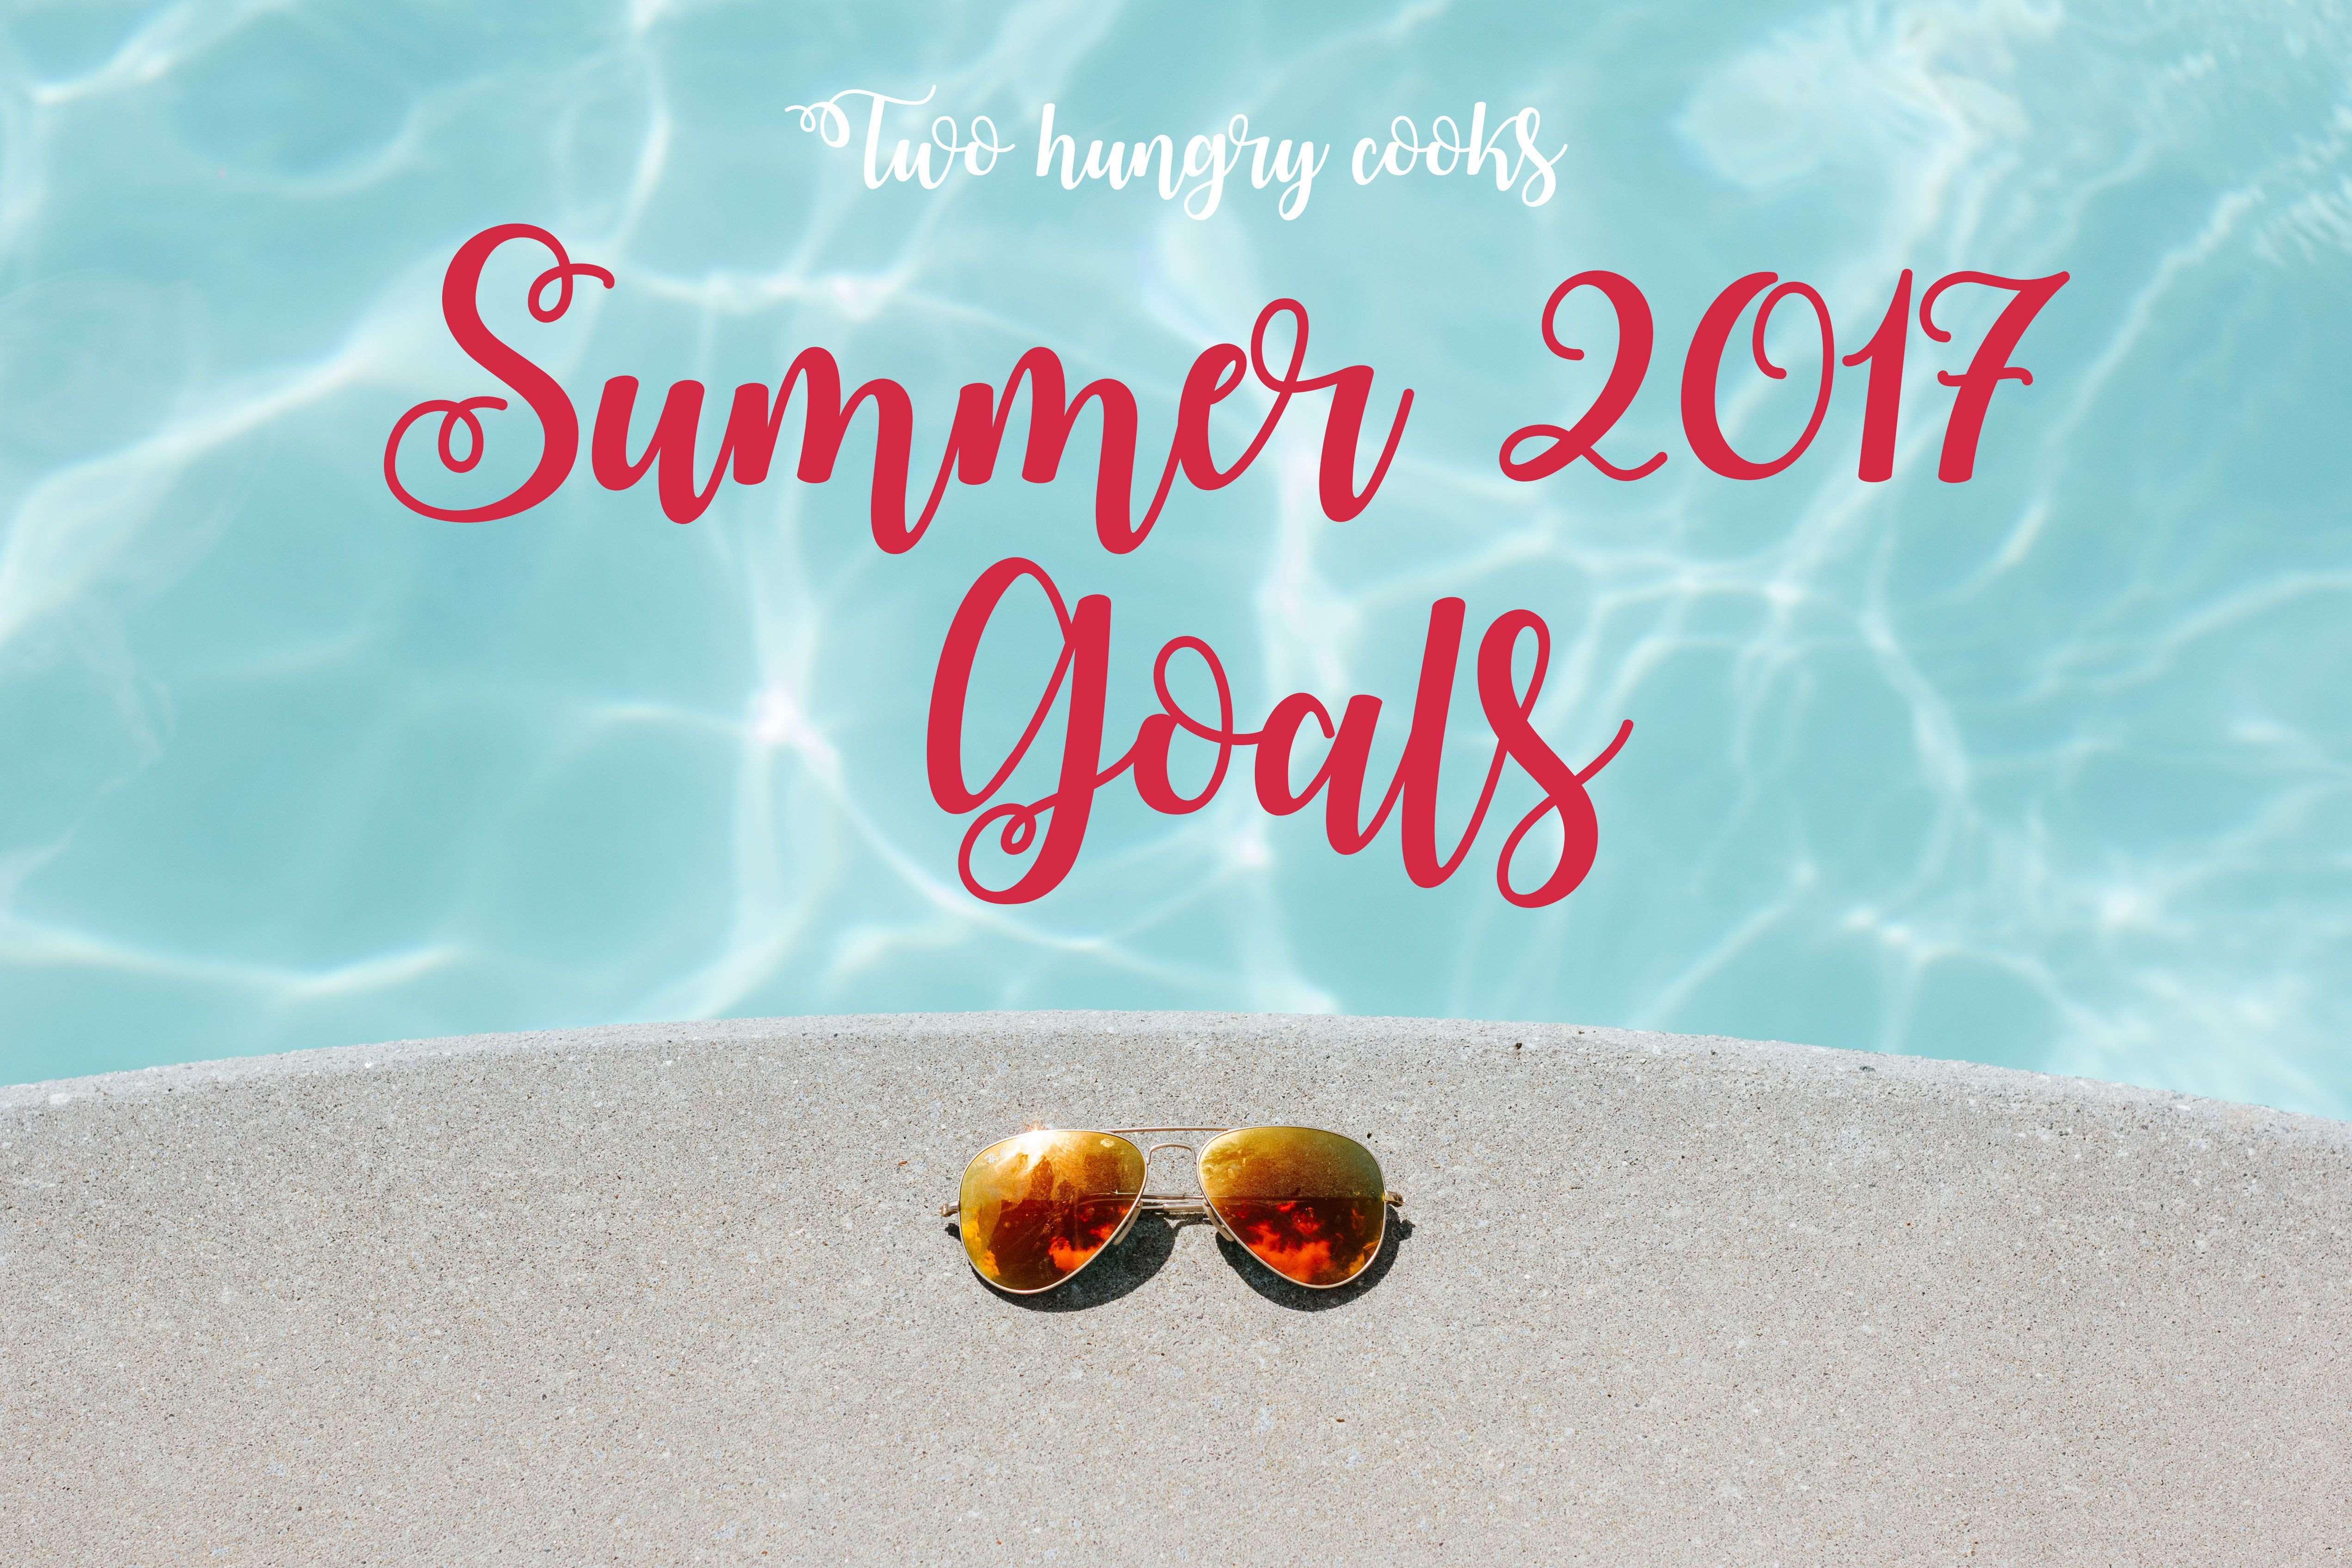 Follow Two Hungry Cooks this summer as they strive to achieve their 2017 seasonal goals - Home organization, Fitness, Education, and Blogging. #summergoals #summerhomeorganization Follow Two Hungry Cooks this summer as they strive to achieve their 2017 seasonal goals - Home organization, Fitness, Education, and Blogging. #summergoals #summerhomeorganization